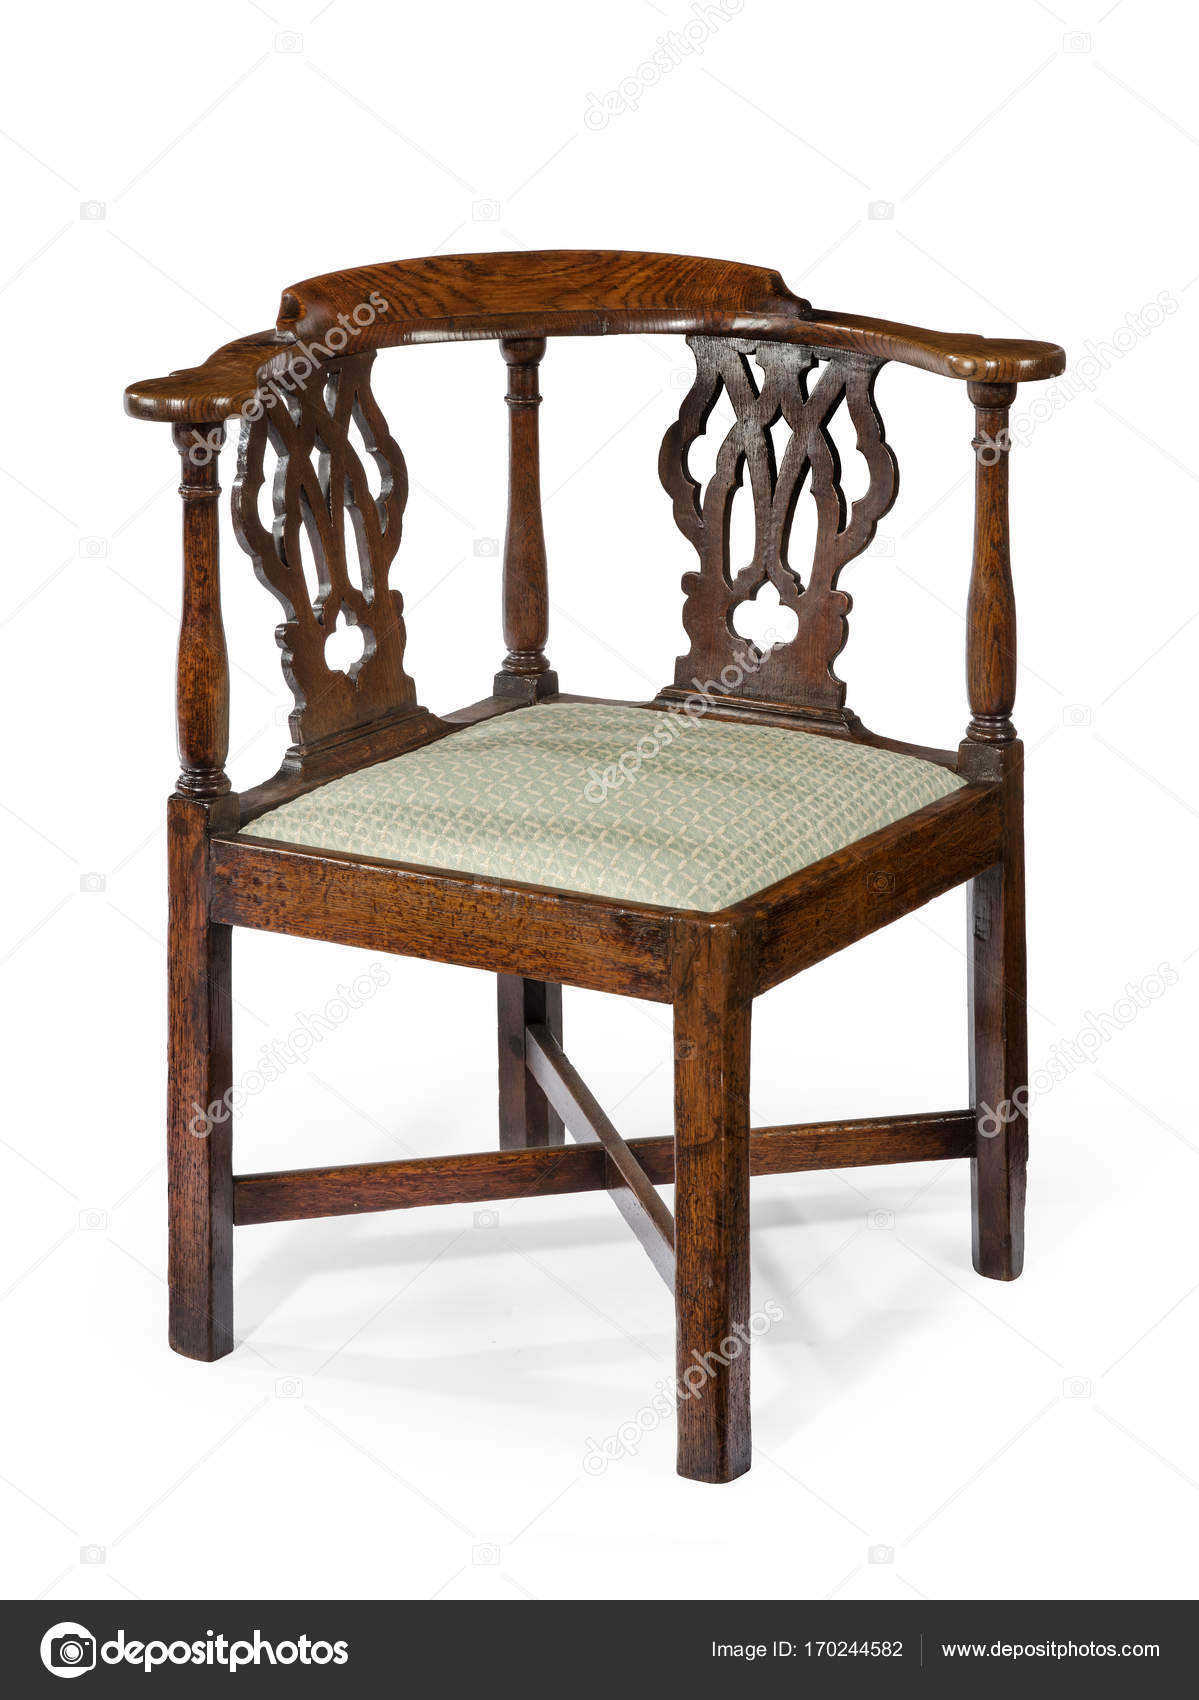 Corner chair old antique wooden mahogany — Stock Photo - Corner Chair Old Antique Wooden Mahogany — Stock Photo © JAK30